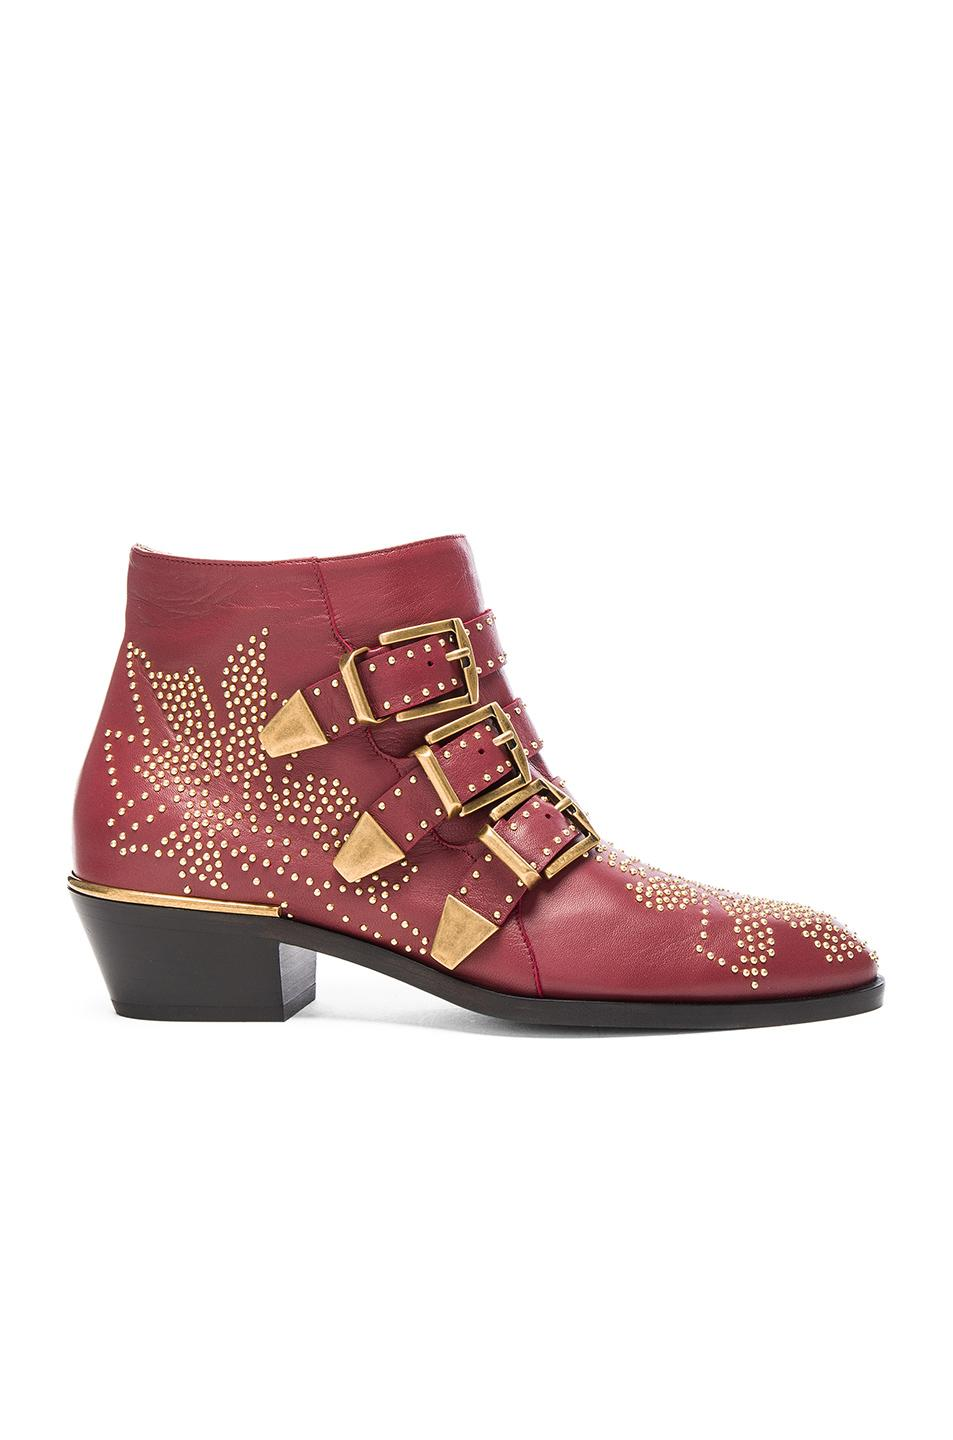 b7e50c0b CHLOE SUSANNA LEATHER STUDDED BOOTIES IN RED